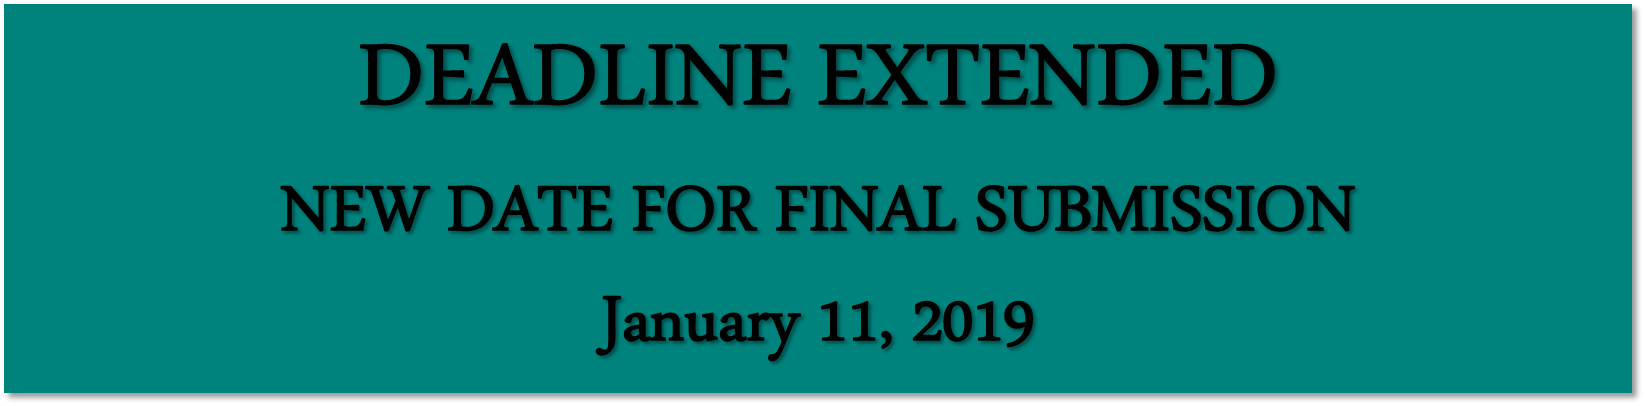 Deadline extended New date for final submission January 11, 2019